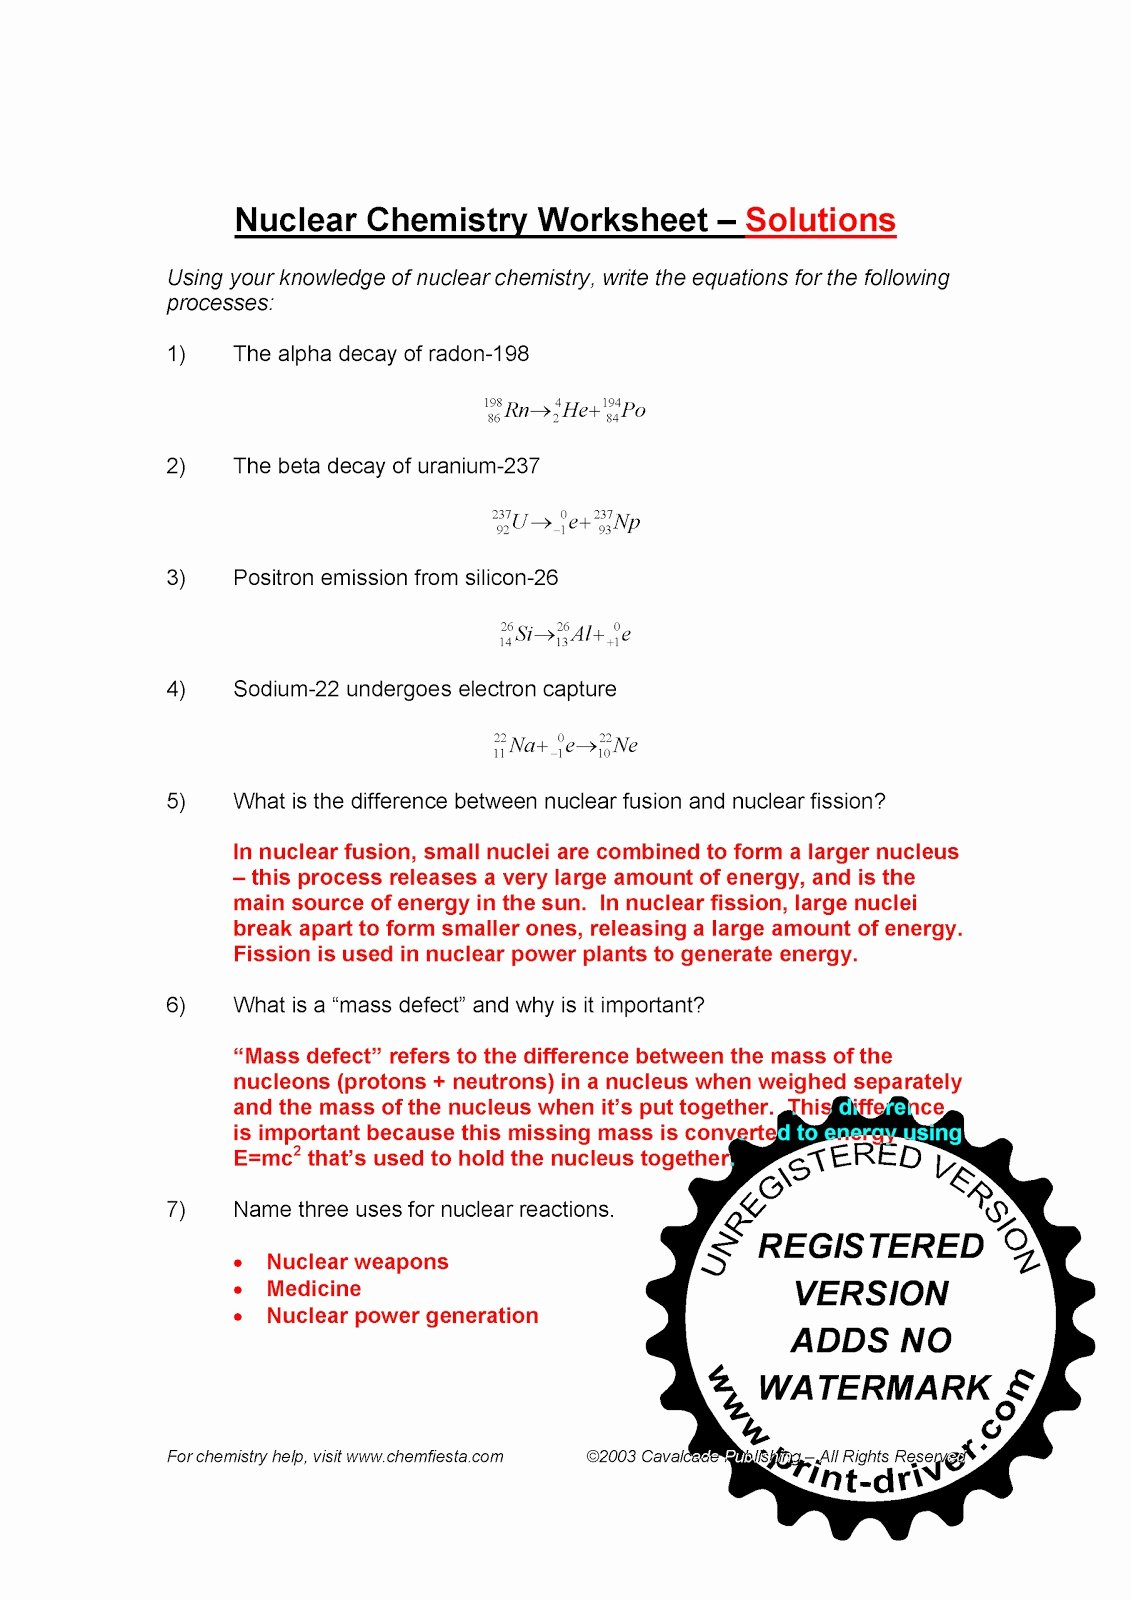 Nuclear Chemistry Worksheet Answers Inspirational Mr Zehner S Chemistry Class November 2010